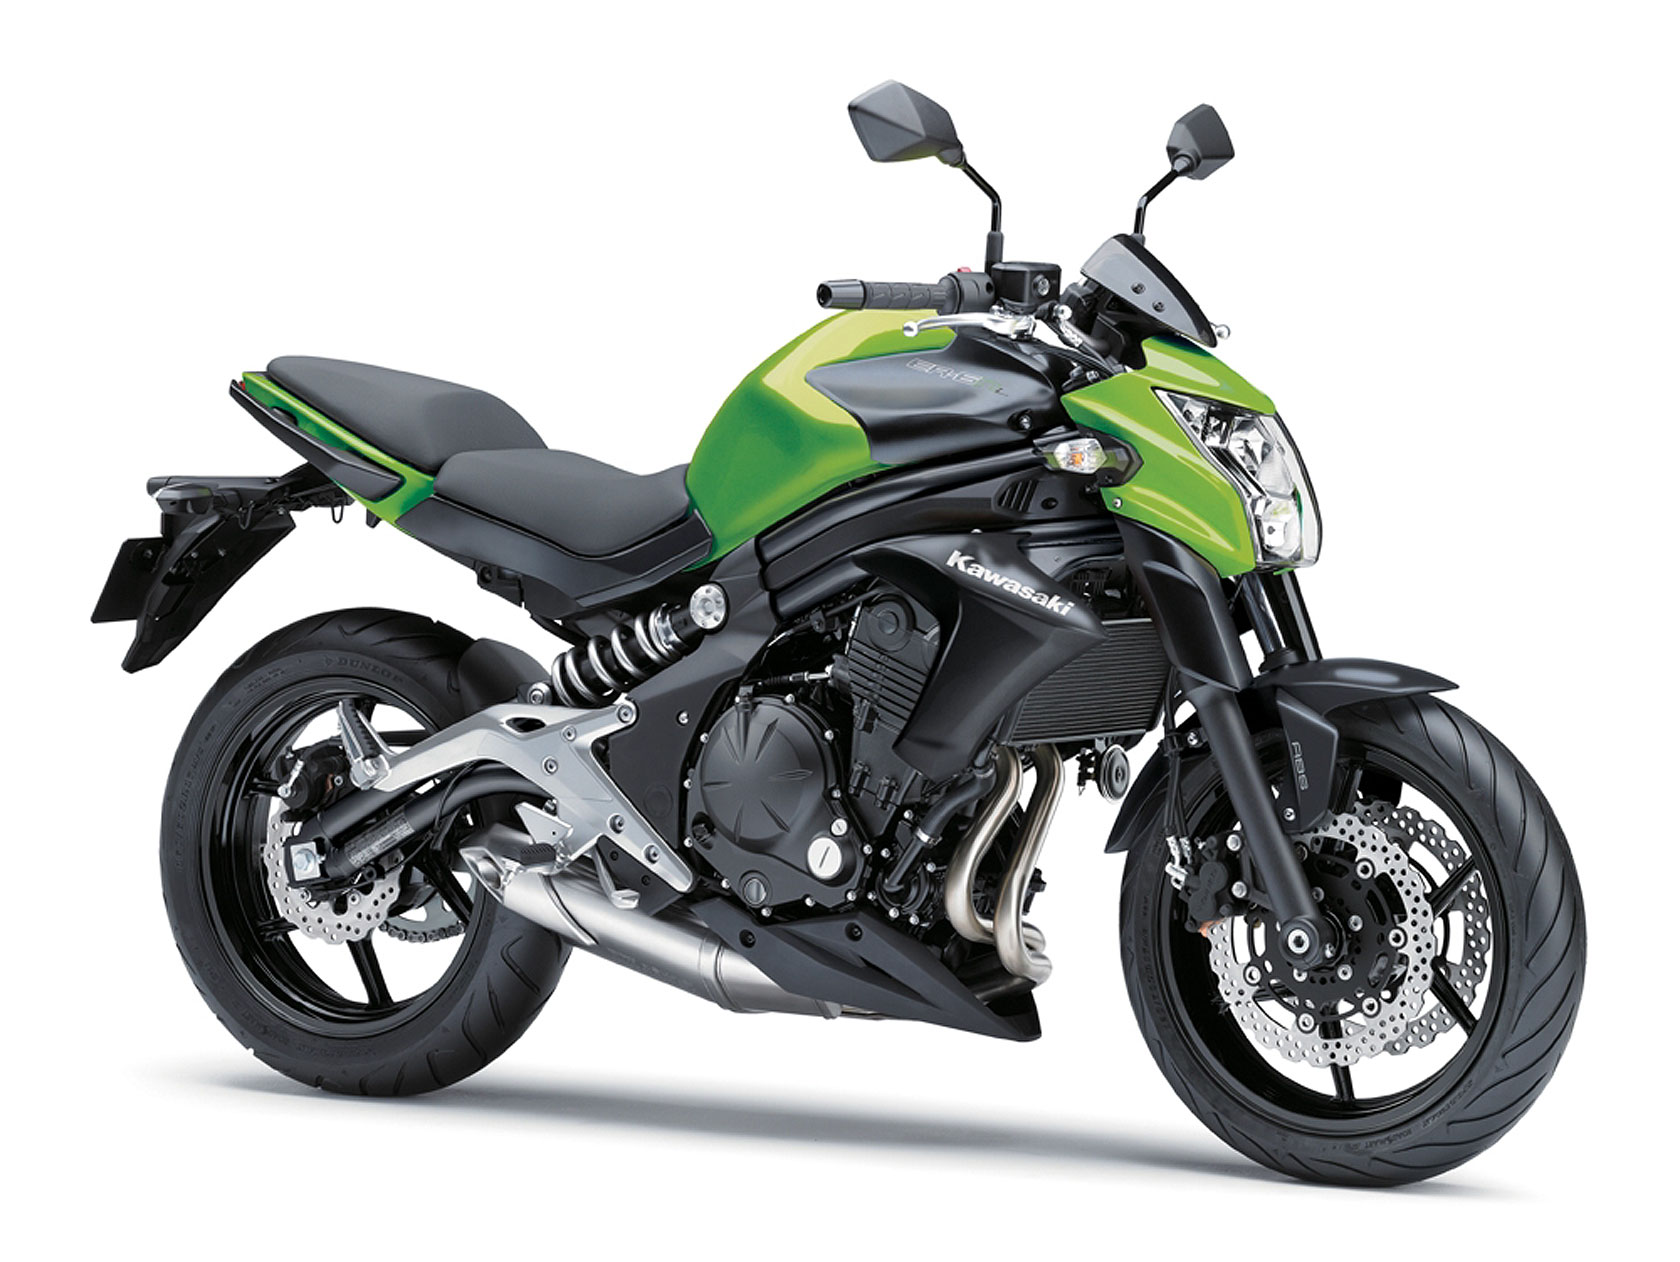 http://www.totalmotorcycle.com/motorcycles/2013models/2013-Kawasaki-ER6nL-ABS1.jpg